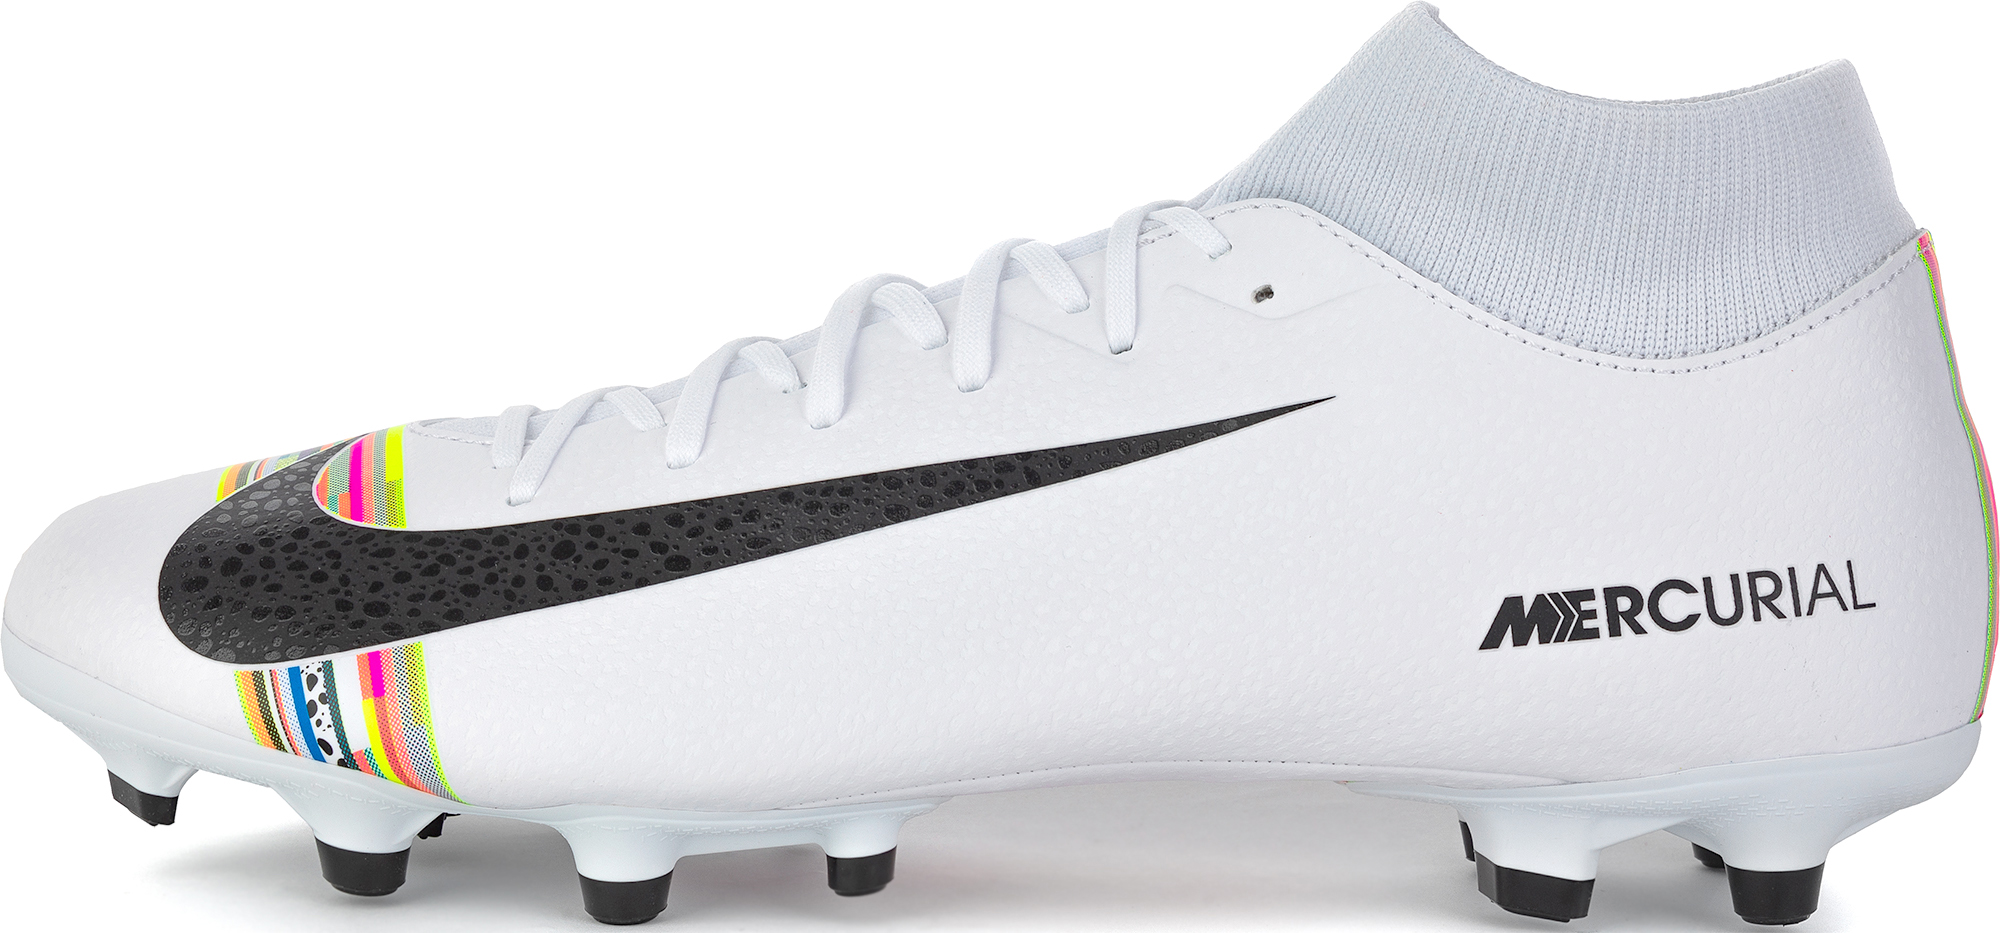 Nike Бутсы мужские Nike Mercurial Superfly 6 Academy CR7 FG/MG, размер 43